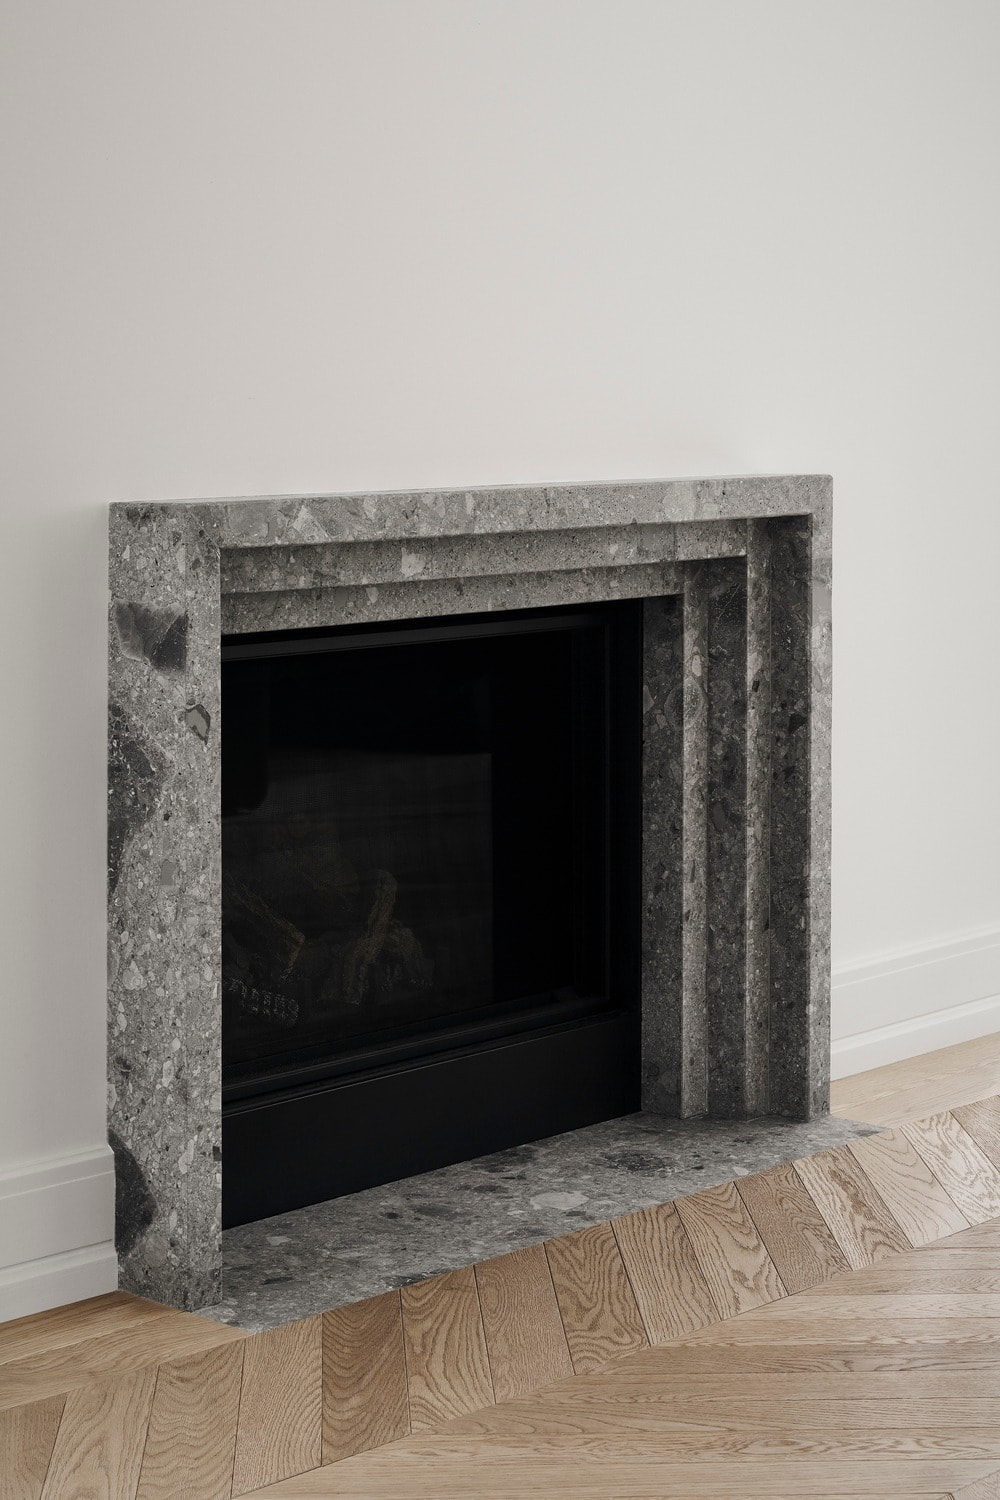 Across from the sofa is this fireplace with a simple concrete mantle that complements the white wall.